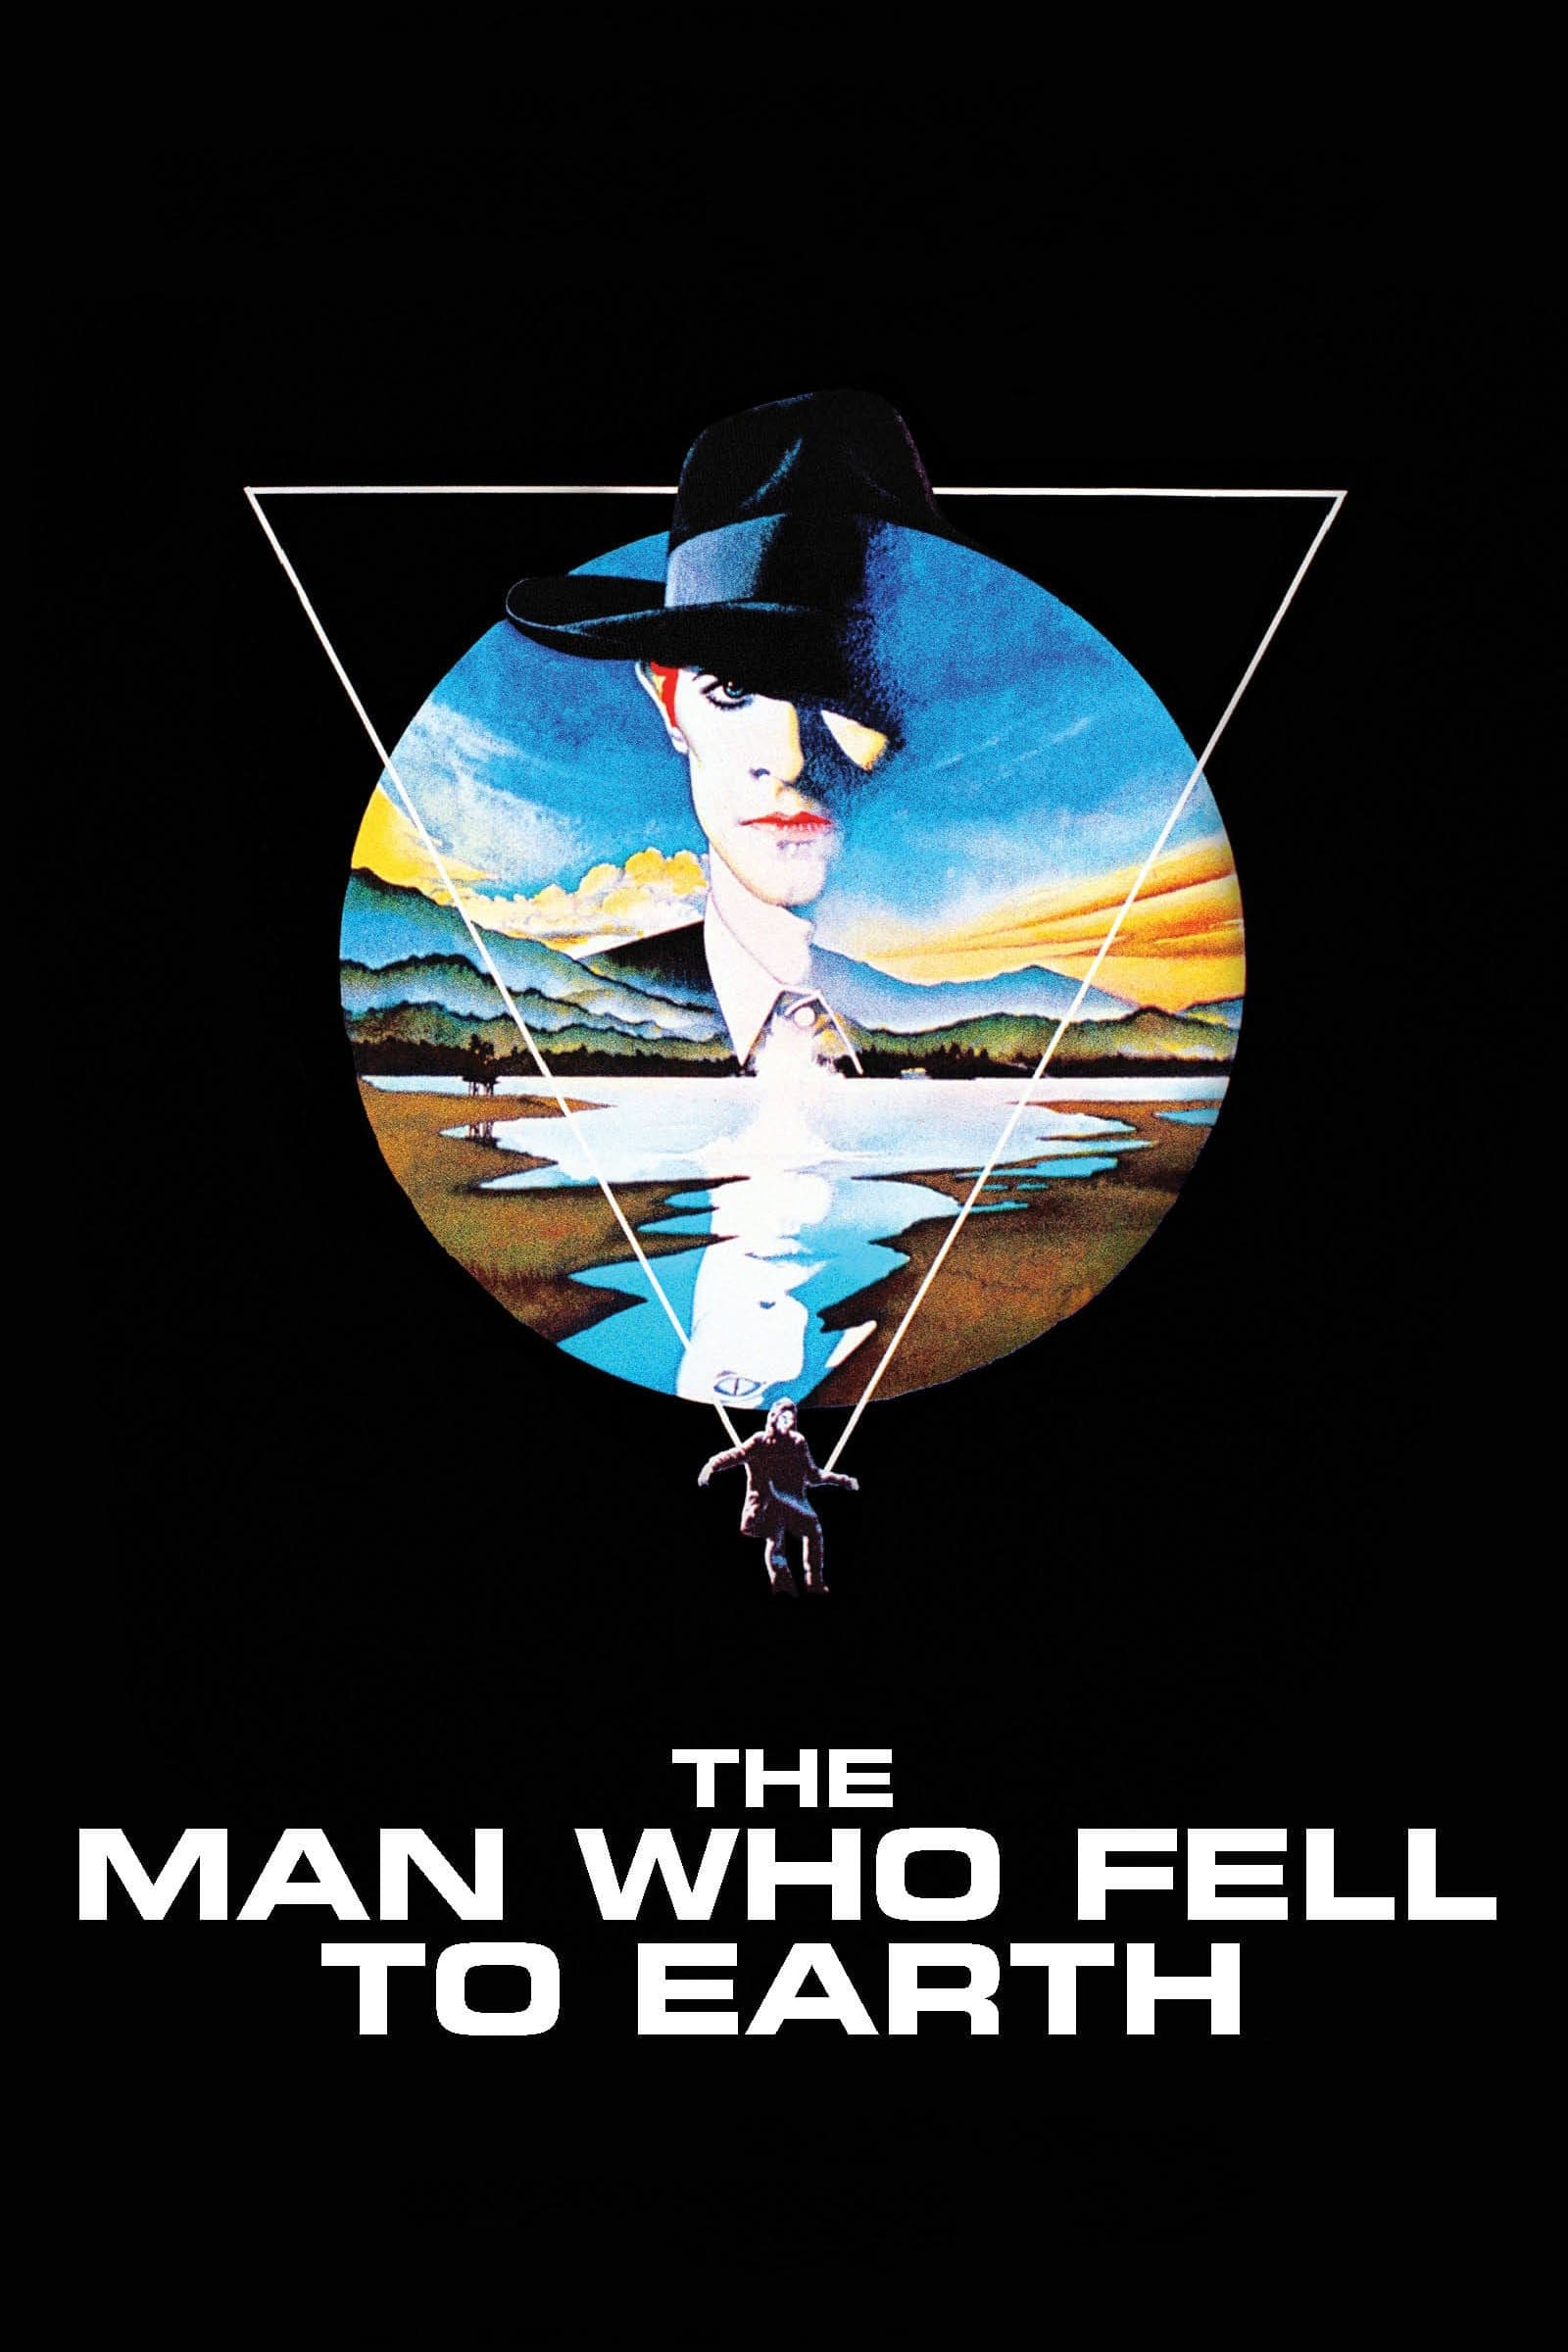 Poster for THE MAN WHO FELL TO EARTH